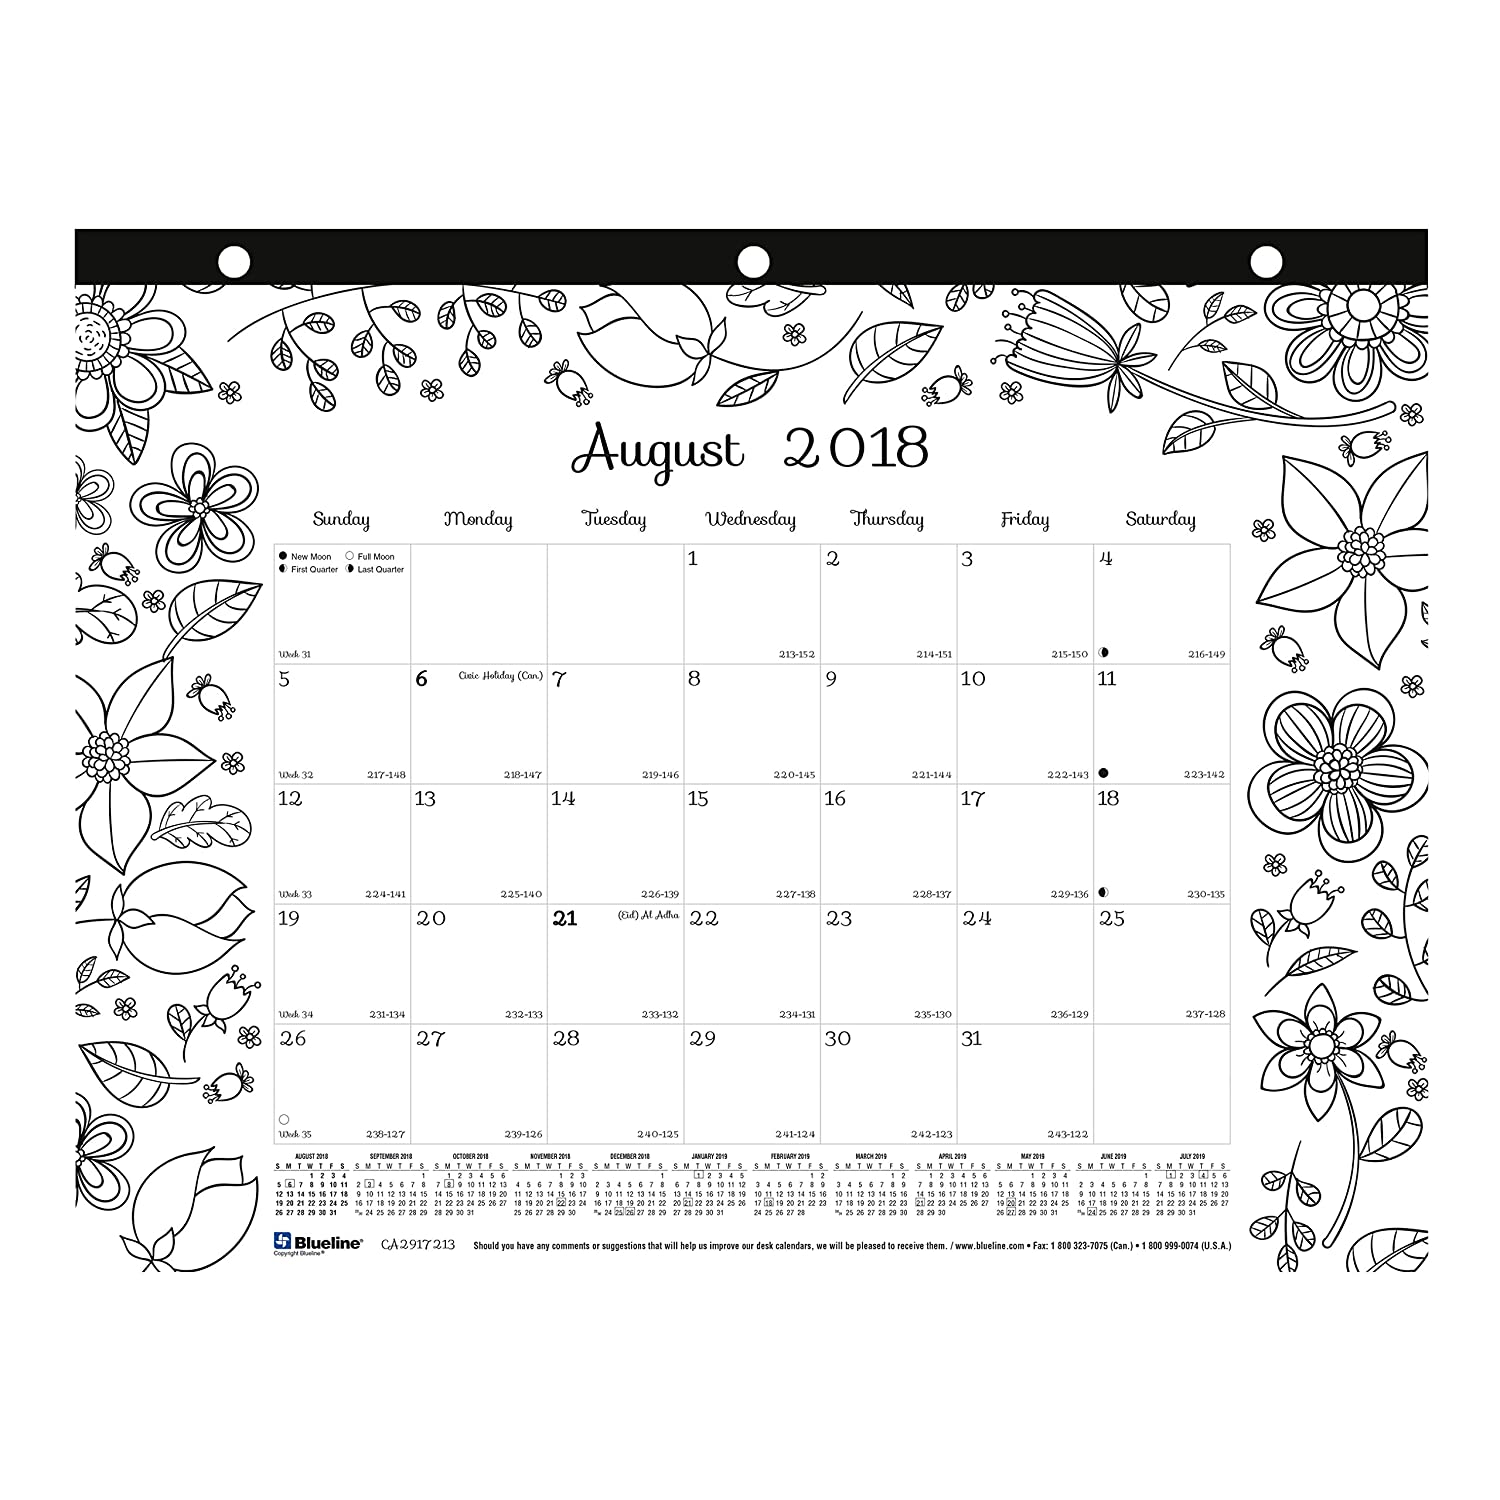 Blueline 2018-2019 DoodlePlan Academic Coloring Desk Pad Calendar, Garden Designs, August 2018 to July 2019, 11 x 8.5 inches (CA2917213-19) REDIFORM OFFICE PRODUCTS